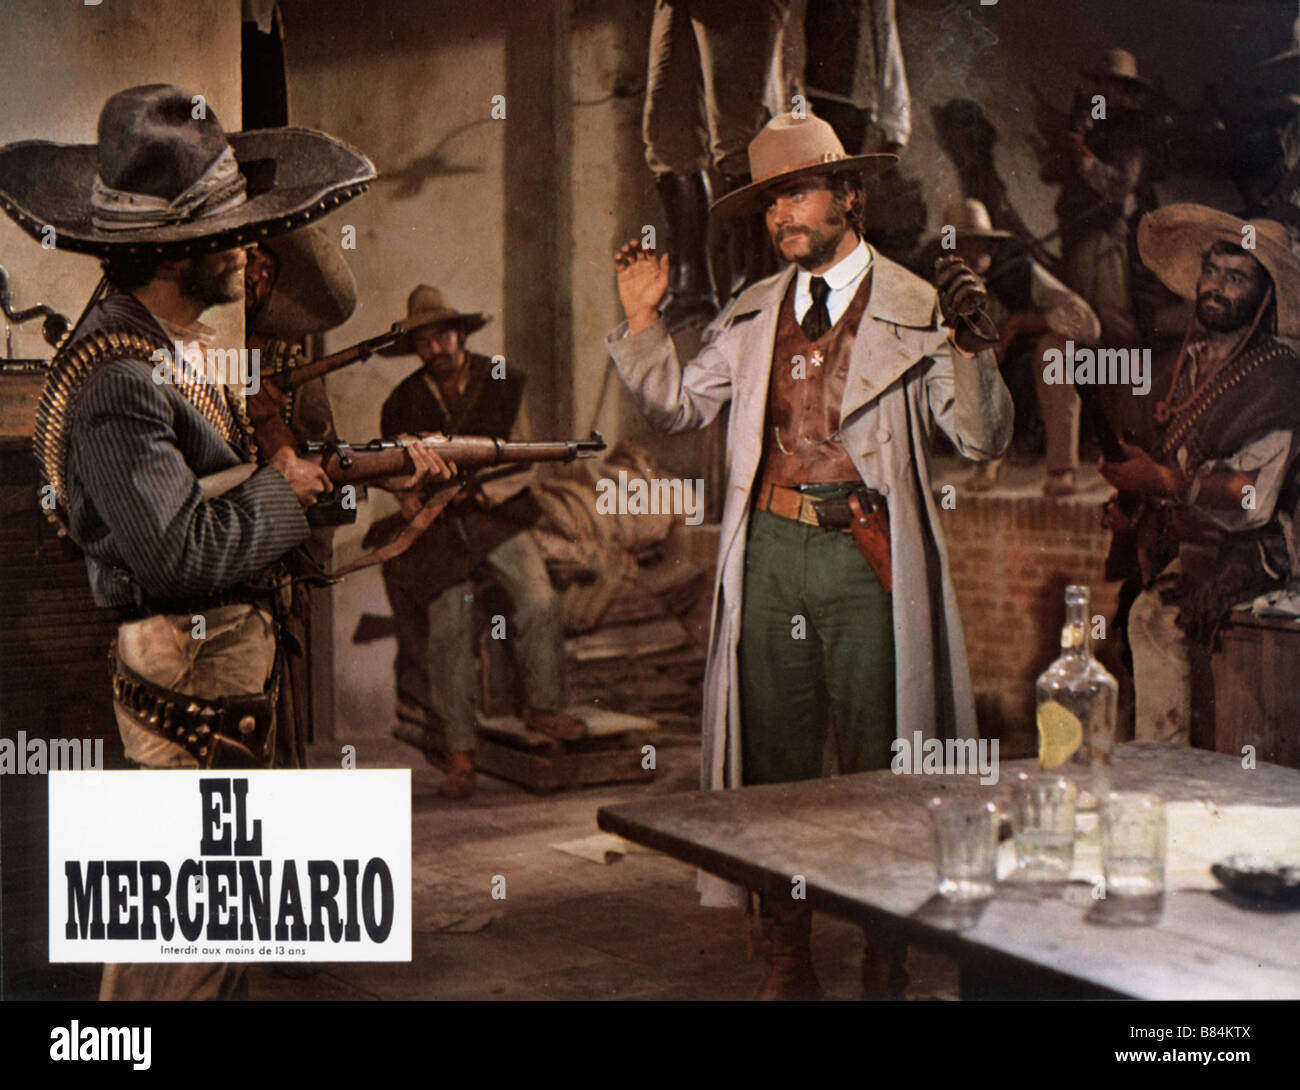 sergio corbucci stock photos sergio corbucci stock images alamy franco nero tony musante director sergio corbucci stock image